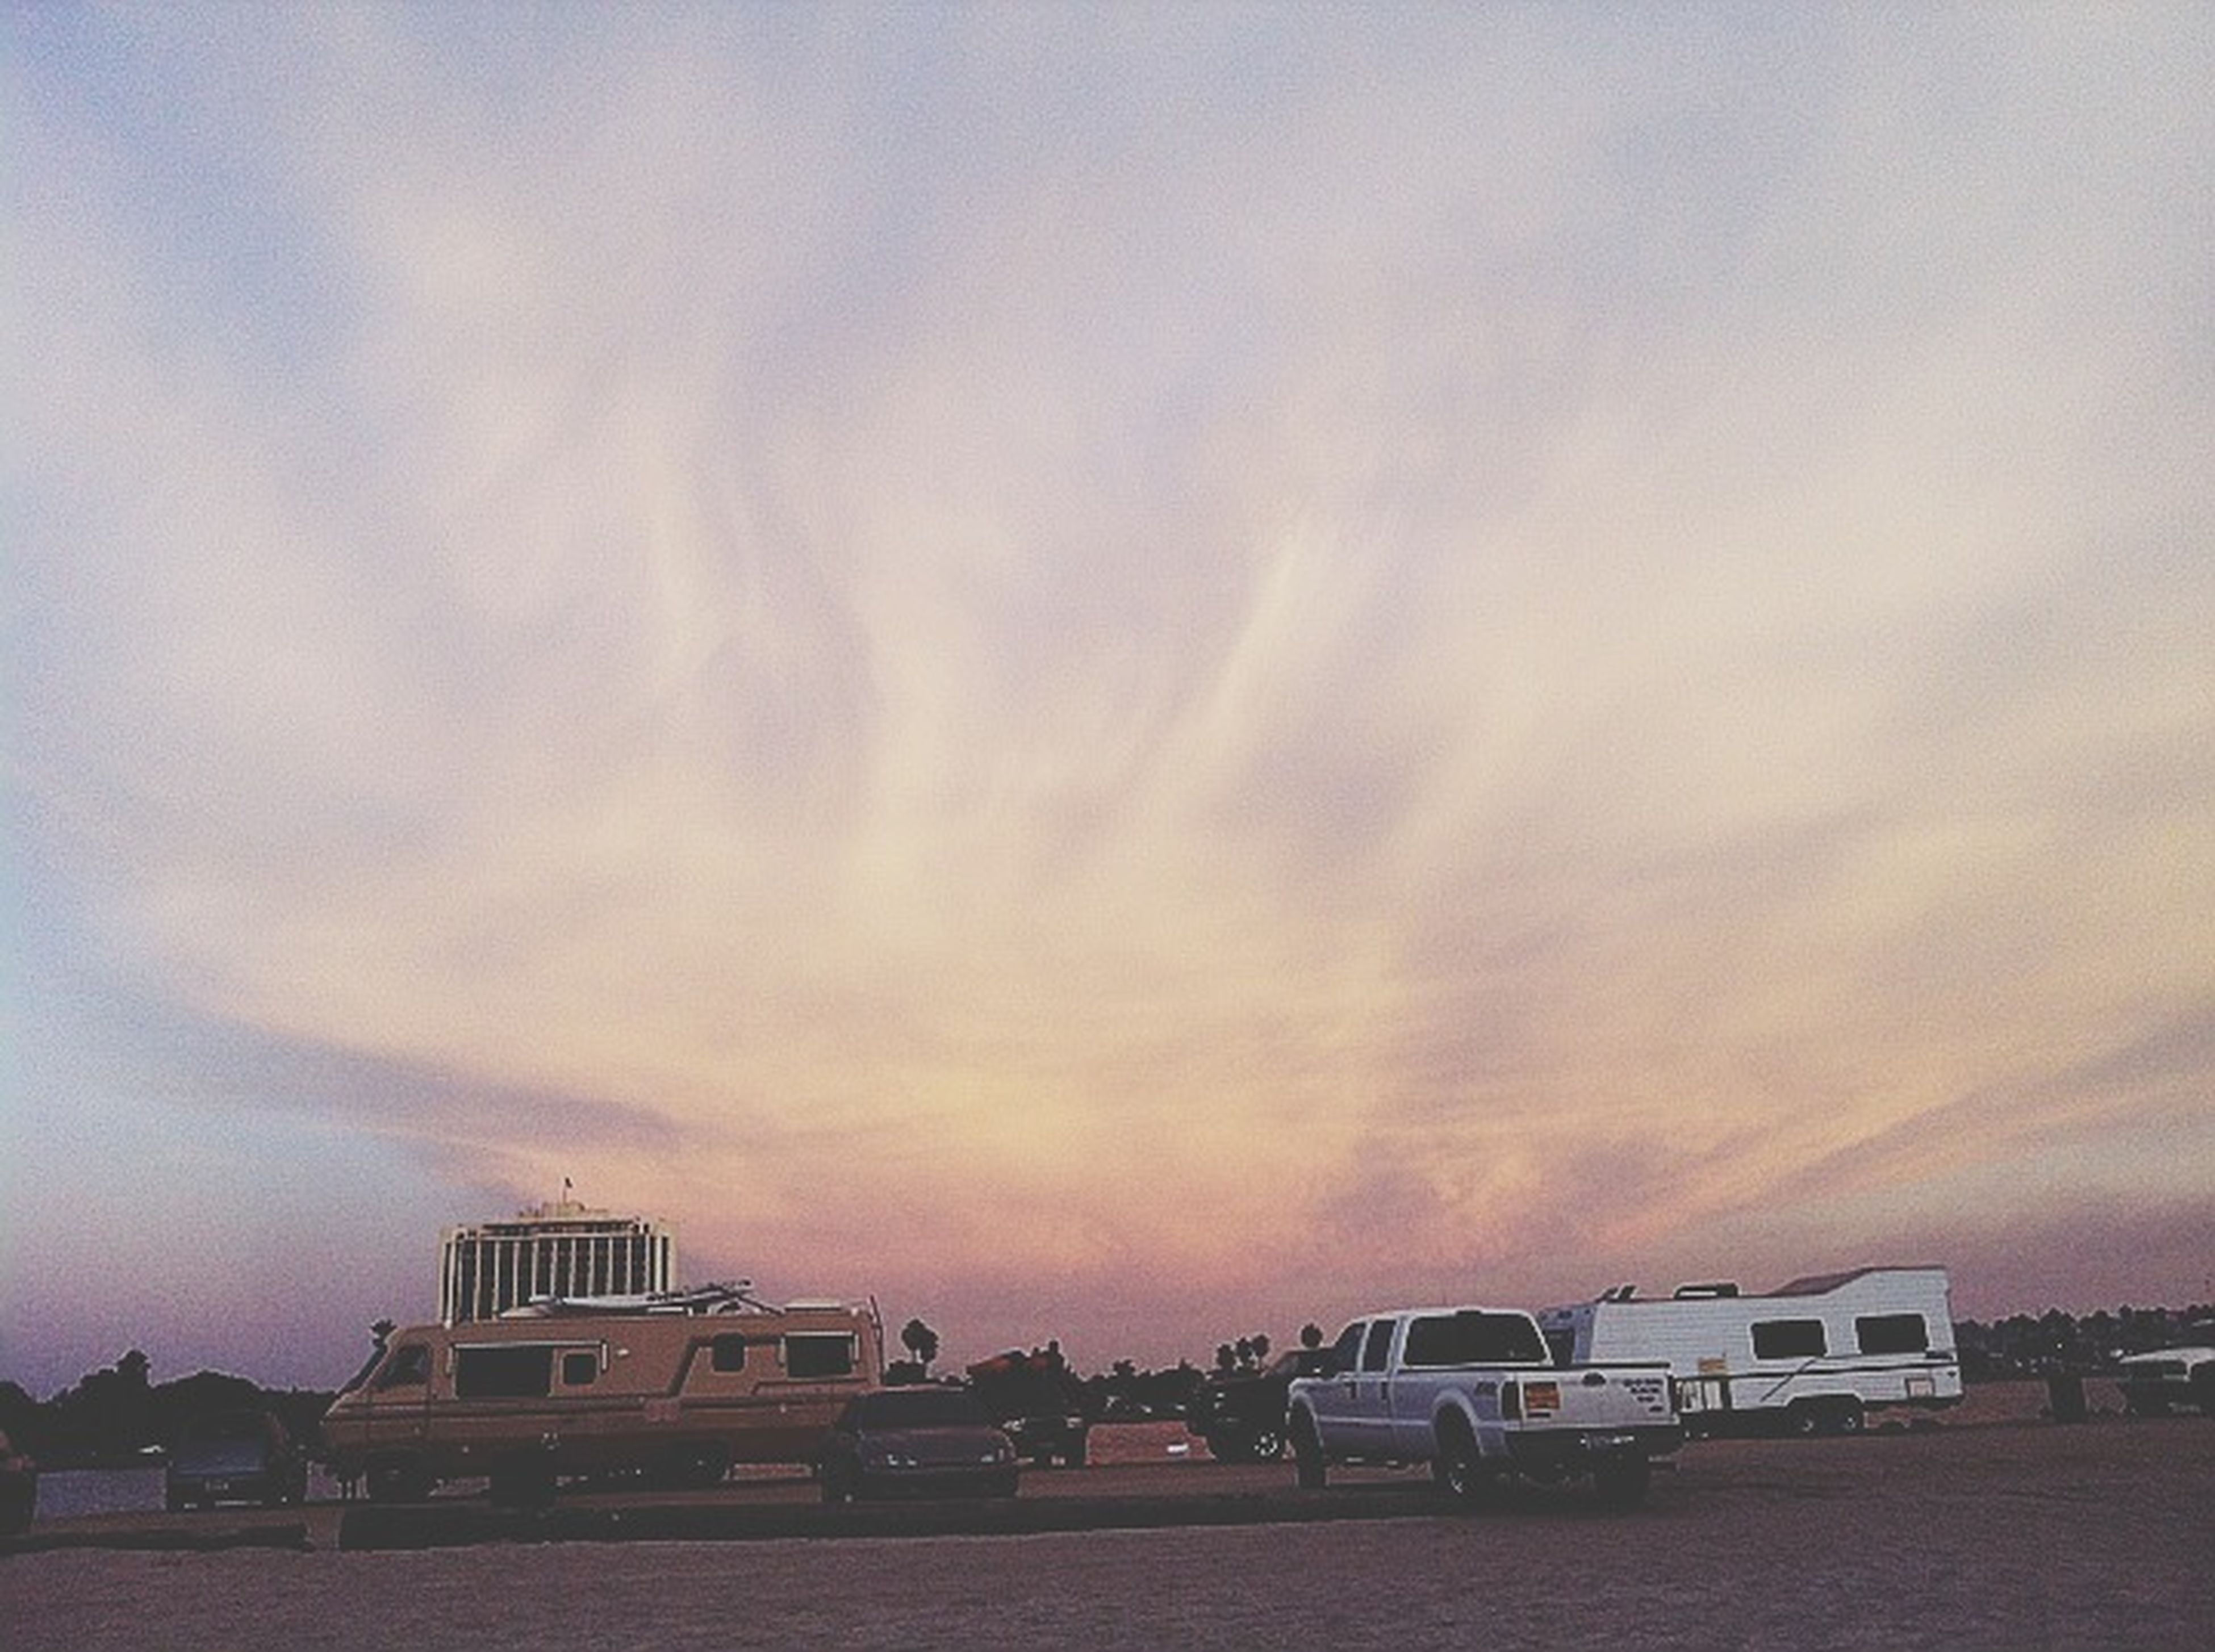 building exterior, architecture, built structure, sky, cloud - sky, sunset, cloudy, city, outdoors, building, weather, cloud, low angle view, residential structure, house, car, overcast, dusk, no people, residential building